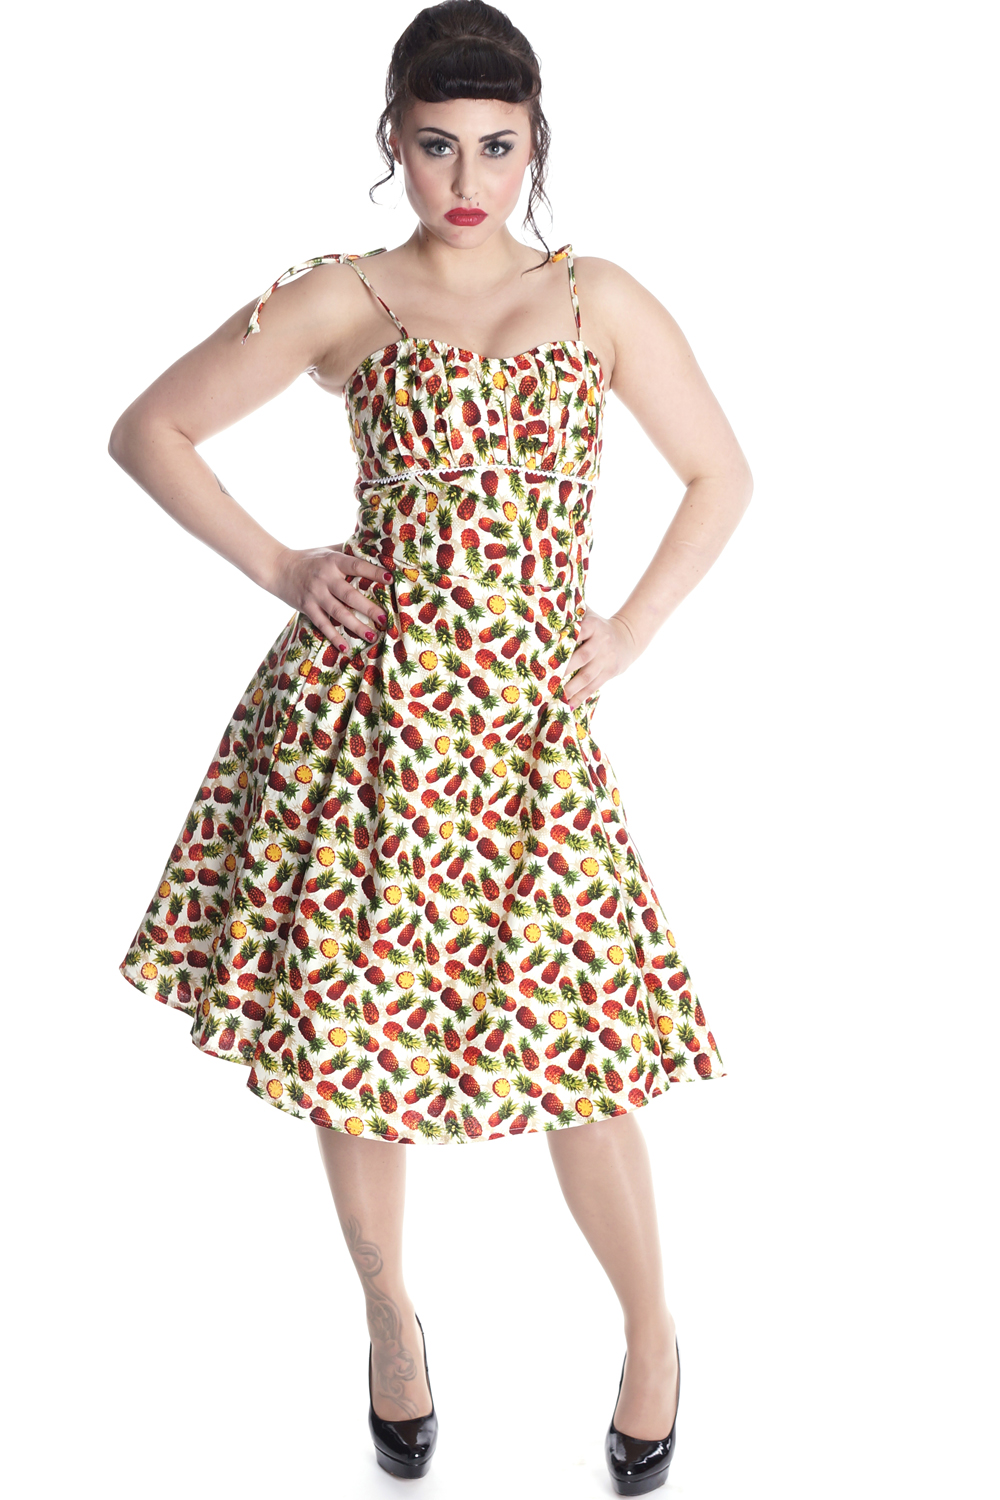 Hawaii Ananas rockabilly retro Sommer Swing Träger Kleid Petticoatkleid